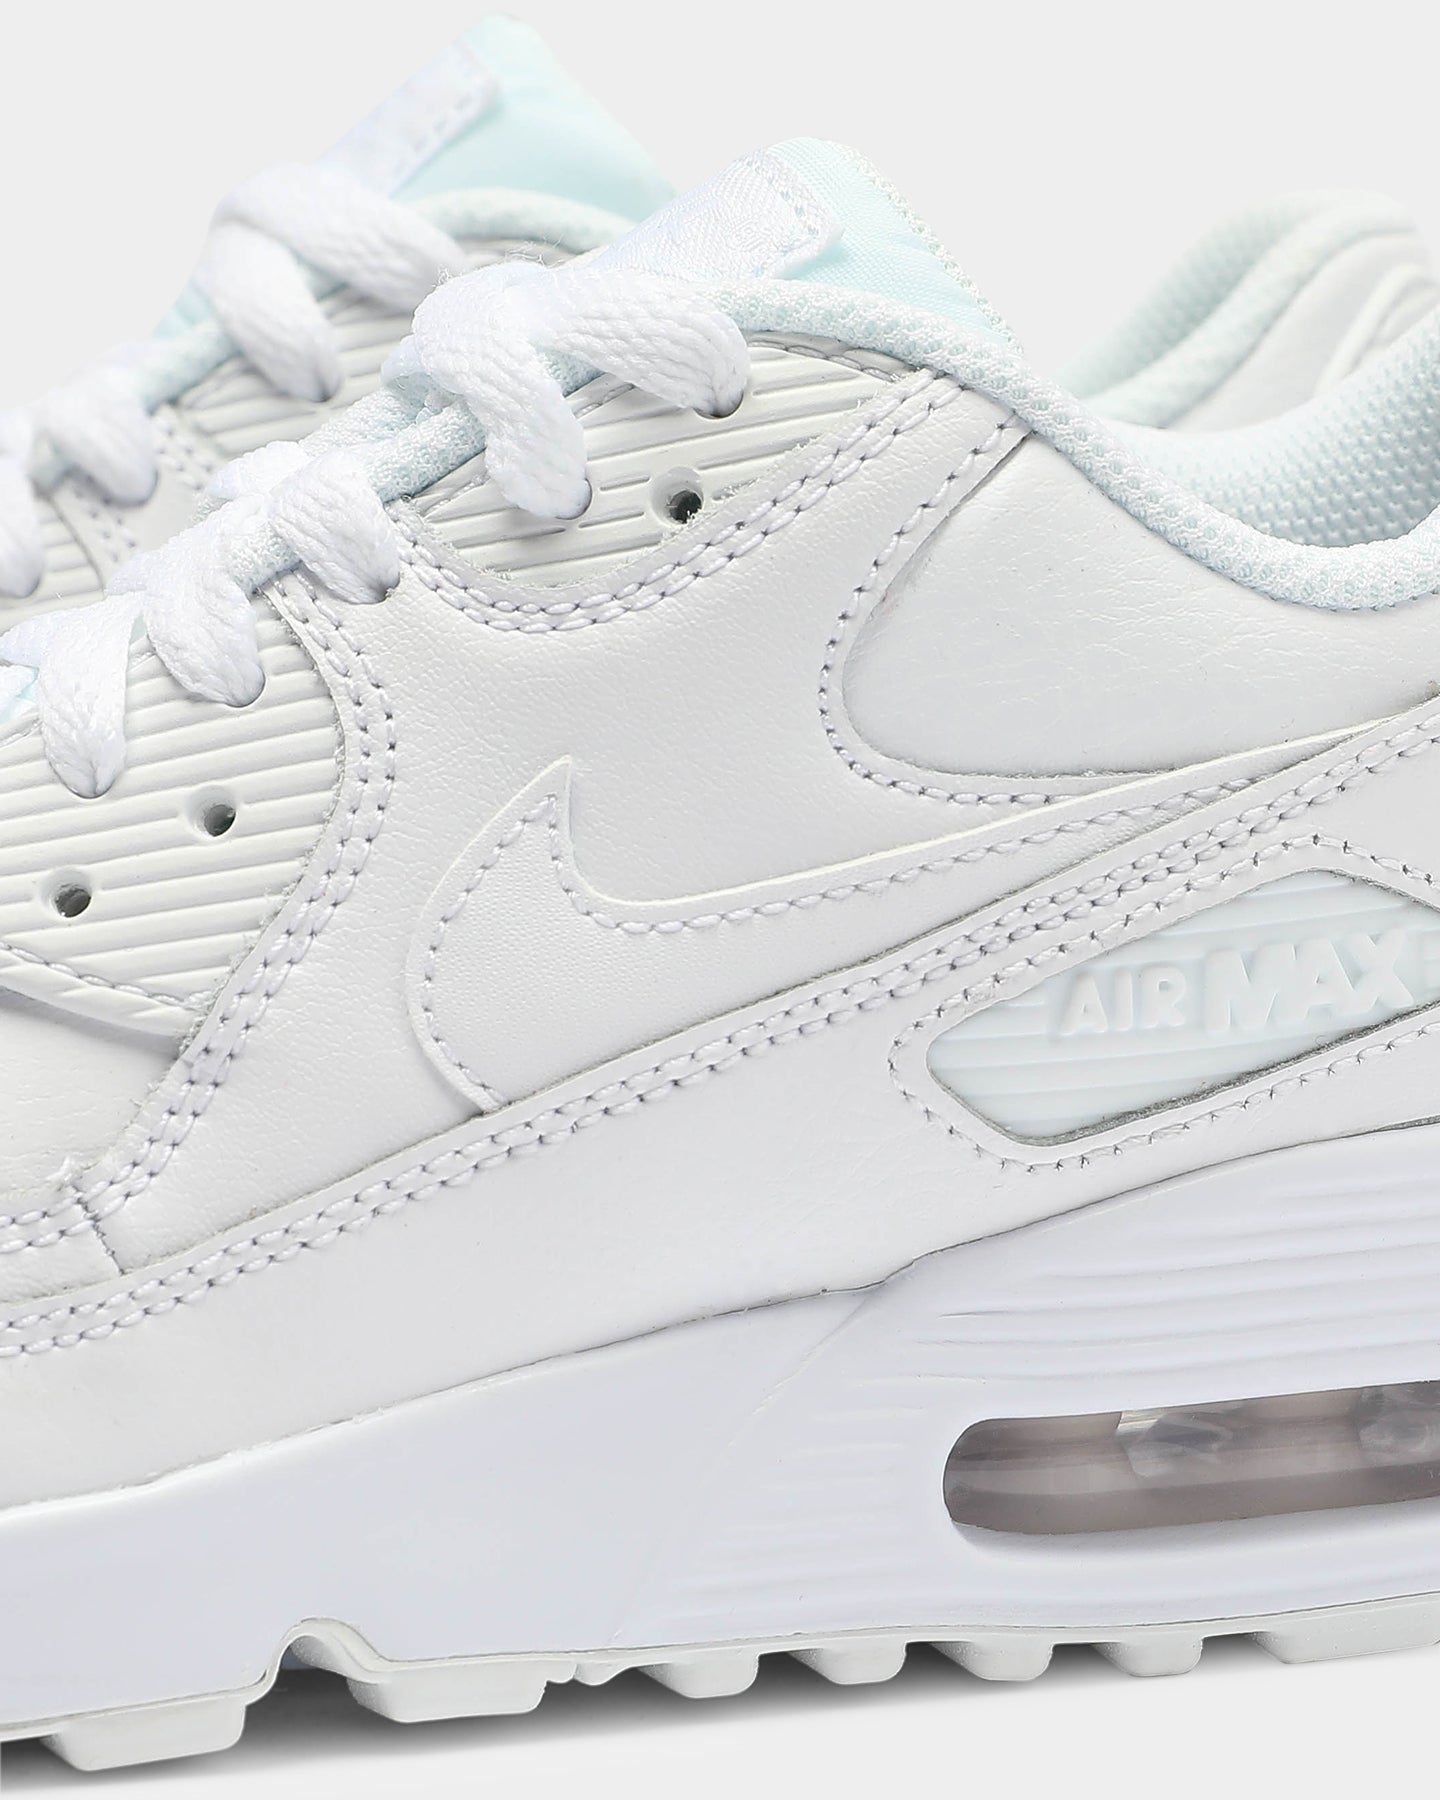 Nike Air Max 90 SE Leather GS shoes silver